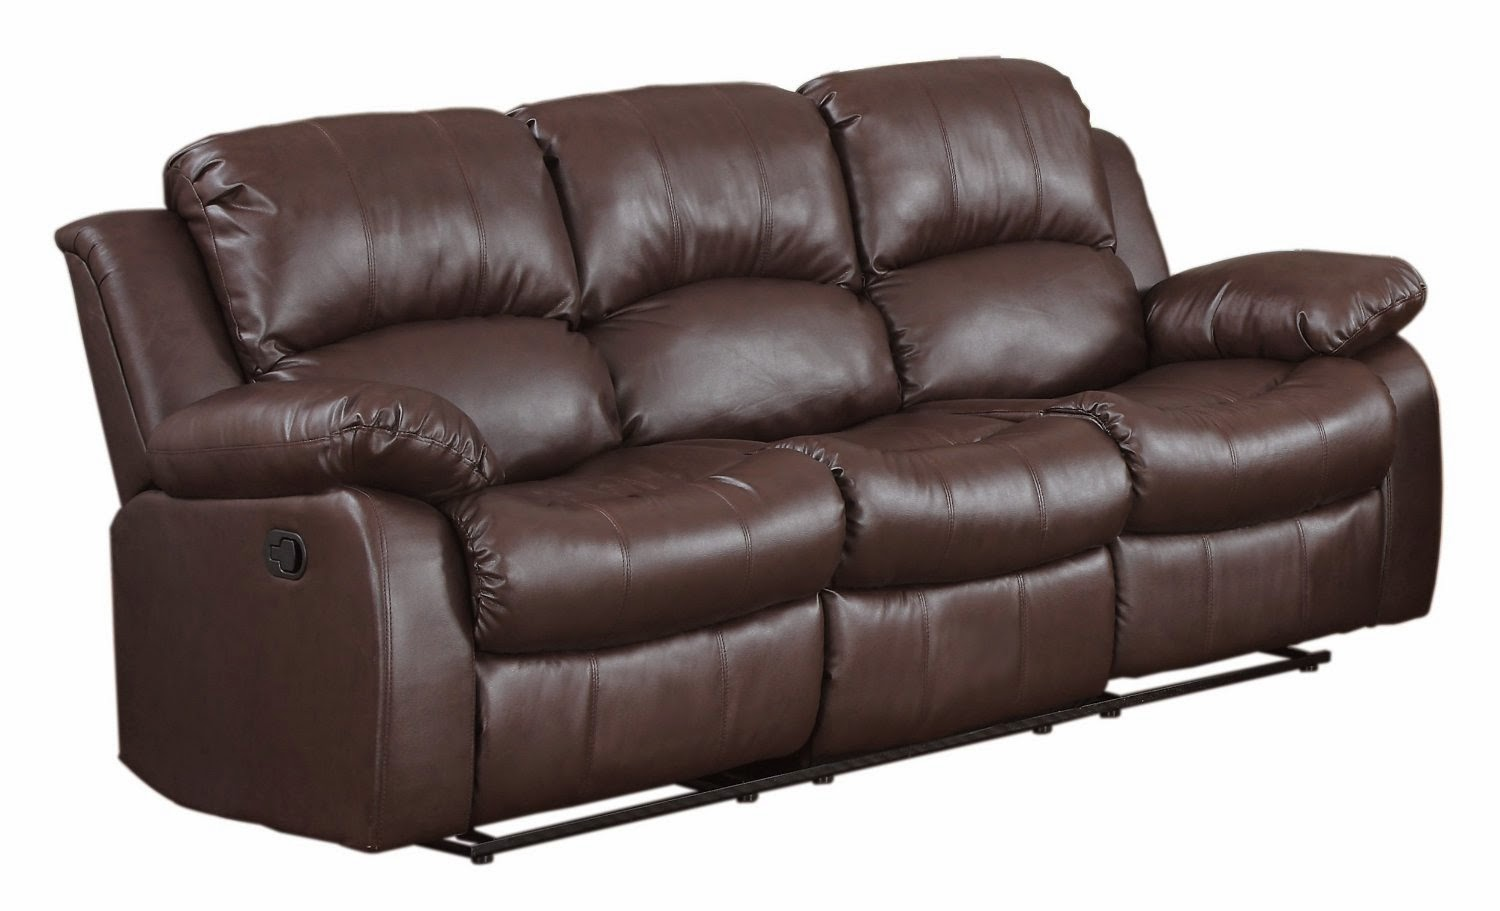 Cheap recliner sofas for sale sectional reclining sofas leather Leather loveseat recliners